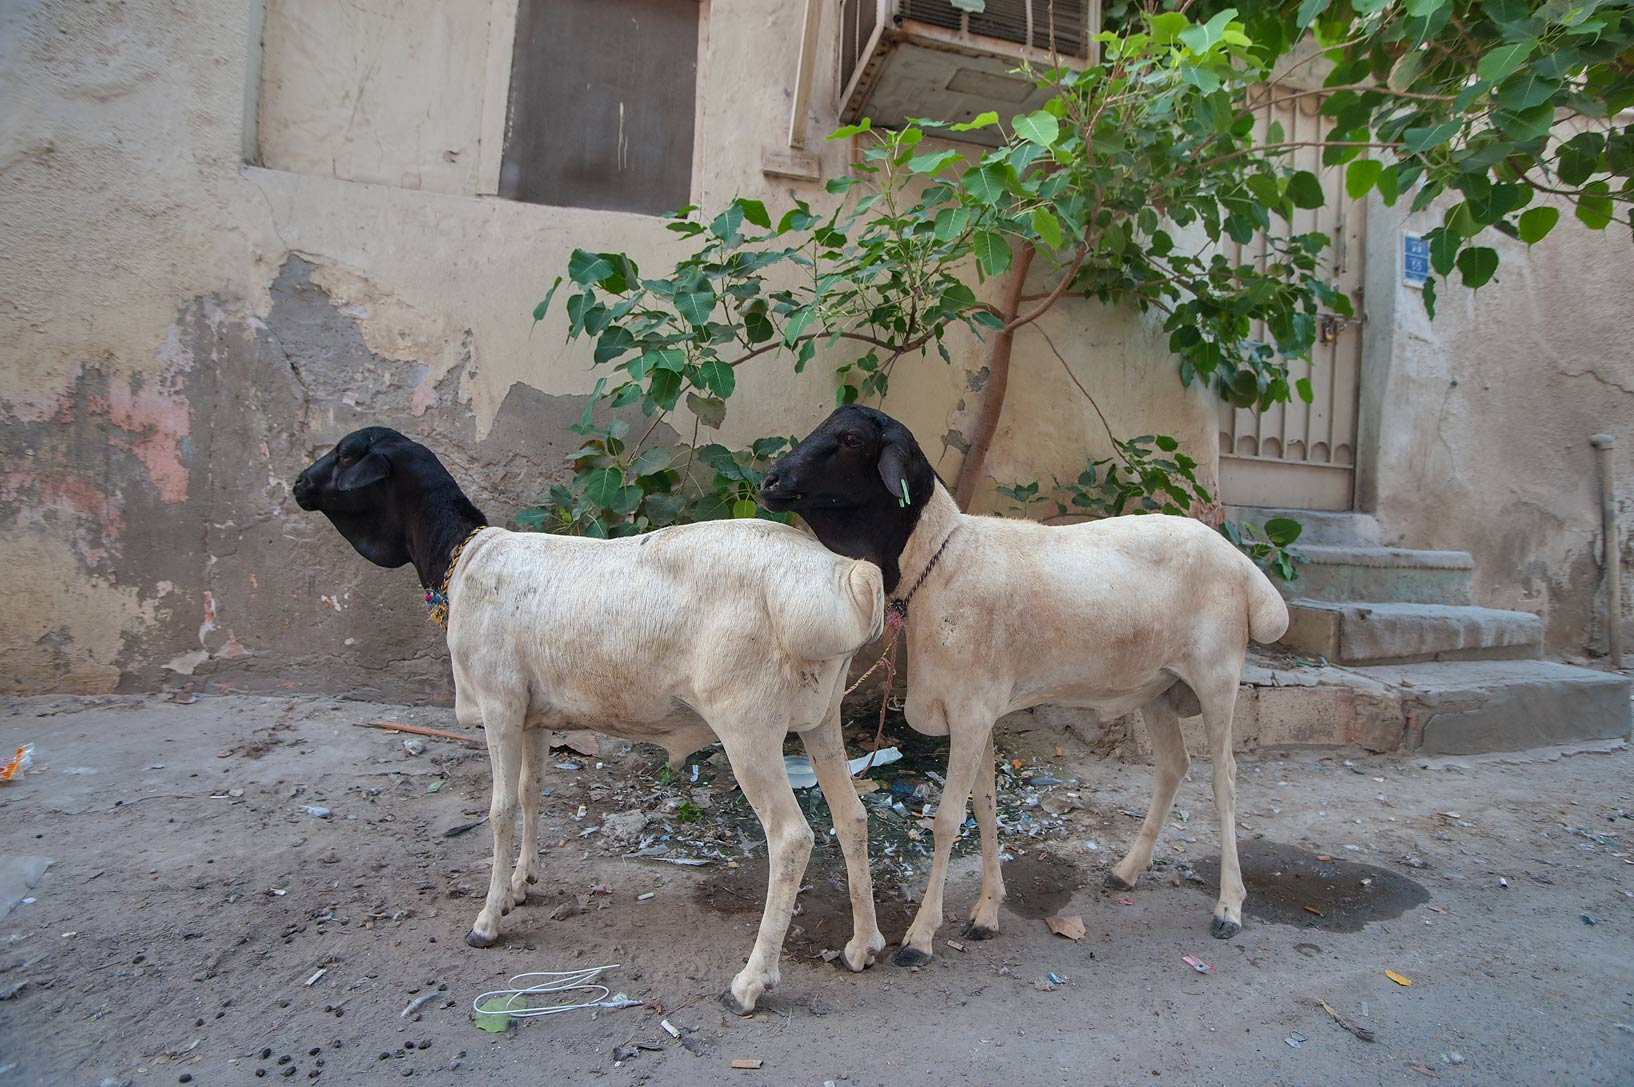 Black headed goats for Feast of the Sacrifice (Eid al-Adha) in Musheirib area. Doha, Qatar